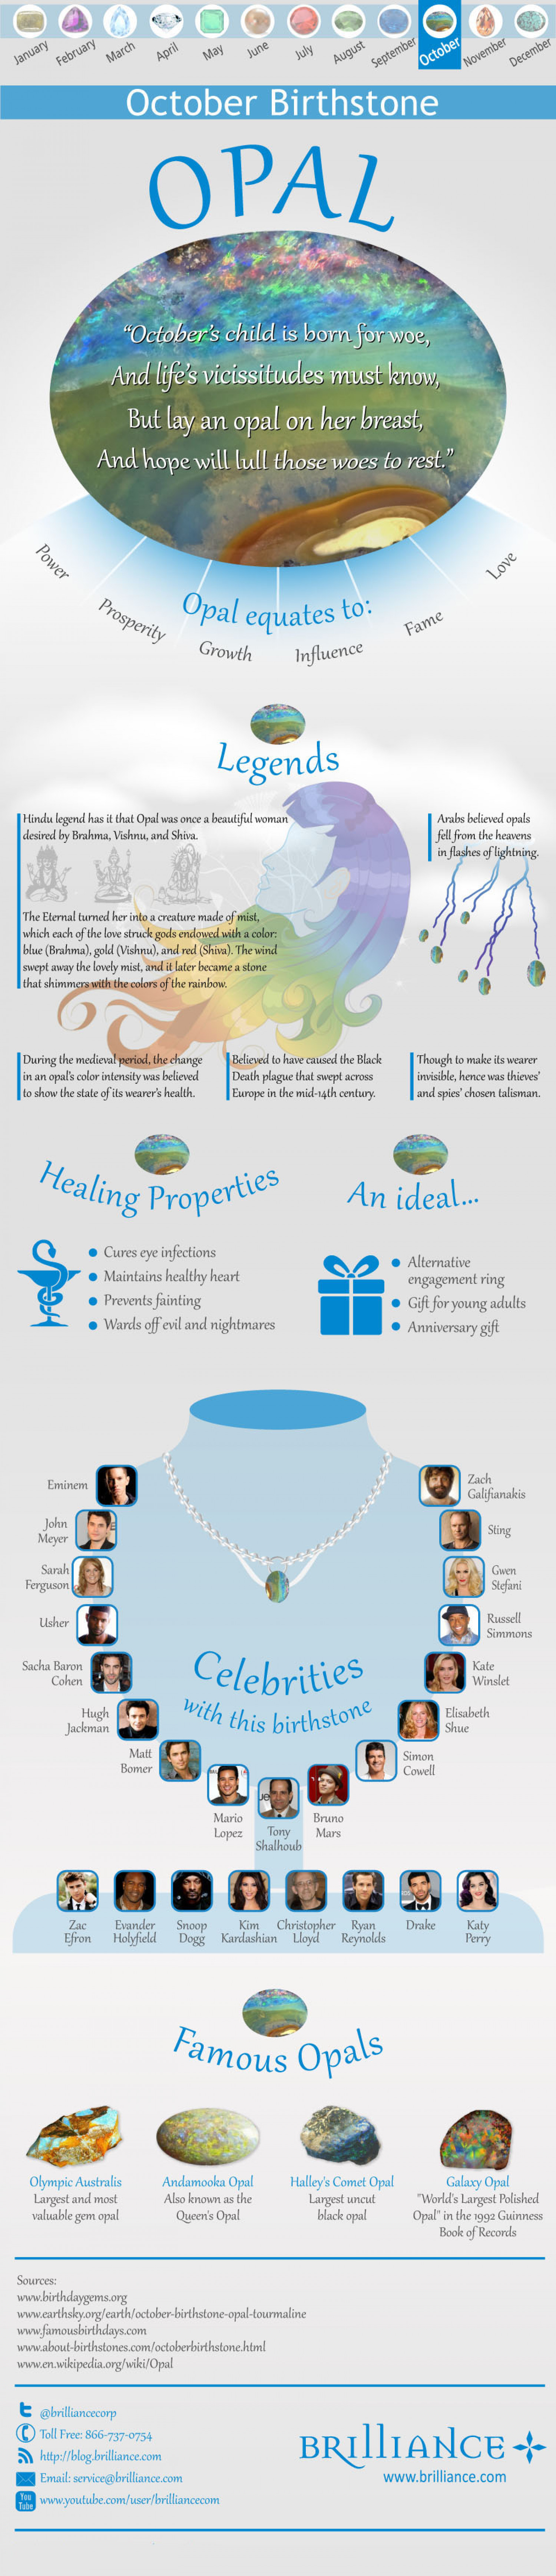 Opal, The October Birthstone Infographic